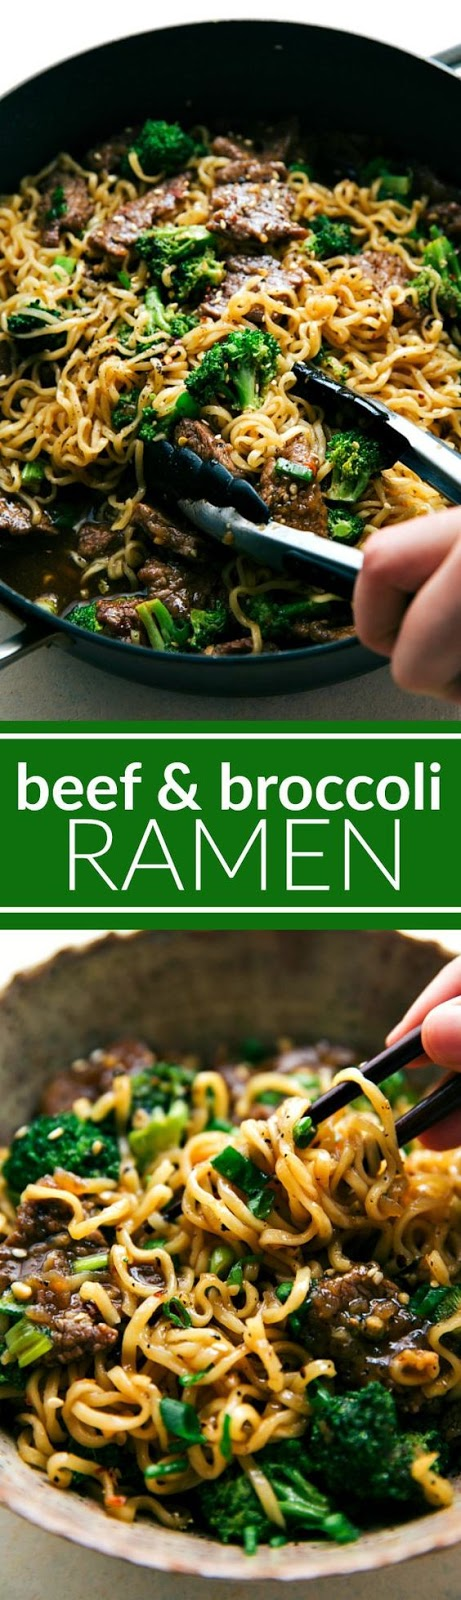 SKILLET BEEF AND BROCCOLI RAMEN #SKILLET #BEEF #AND #BROCCOLI #RAMEN   #DESSERTS #HEALTHYFOOD #EASY_RECIPES #DINNER #LAUCH #DELICIOUS #EASY #HOLIDAYS #RECIPE #SPECIAL_DIET #WORLD_CUISINE #CAKE #GRILL #APPETIZERS #HEALTHY_RECIPES #DRINKS #COOKING_METHOD #ITALIAN_RECIPES #MEAT #VEGAN_RECIPES #COOKIES #PASTA #FRUIT #SALAD #SOUP_APPETIZERS #NON_ALCOHOLIC_DRINKS #MEAL_PLANNING #VEGETABLES #SOUP #PASTRY #CHOCOLATE #DAIRY #ALCOHOLIC_DRINKS #BULGUR_SALAD #BAKING #SNACKS #BEEF_RECIPES #MEAT_APPETIZERS #MEXICAN_RECIPES #BREAD #ASIAN_RECIPES #SEAFOOD_APPETIZERS #MUFFINS #BREAKFAST_AND_BRUNCH #CONDIMENTS #CUPCAKES #CHEESE #CHICKEN_RECIPES #PIE #COFFEE #NO_BAKE_DESSERTS #HEALTHY_SNACKS #SEAFOOD #GRAIN #LUNCHES_DINNERS #MEXICAN #QUICK_BREAD #LIQUOR